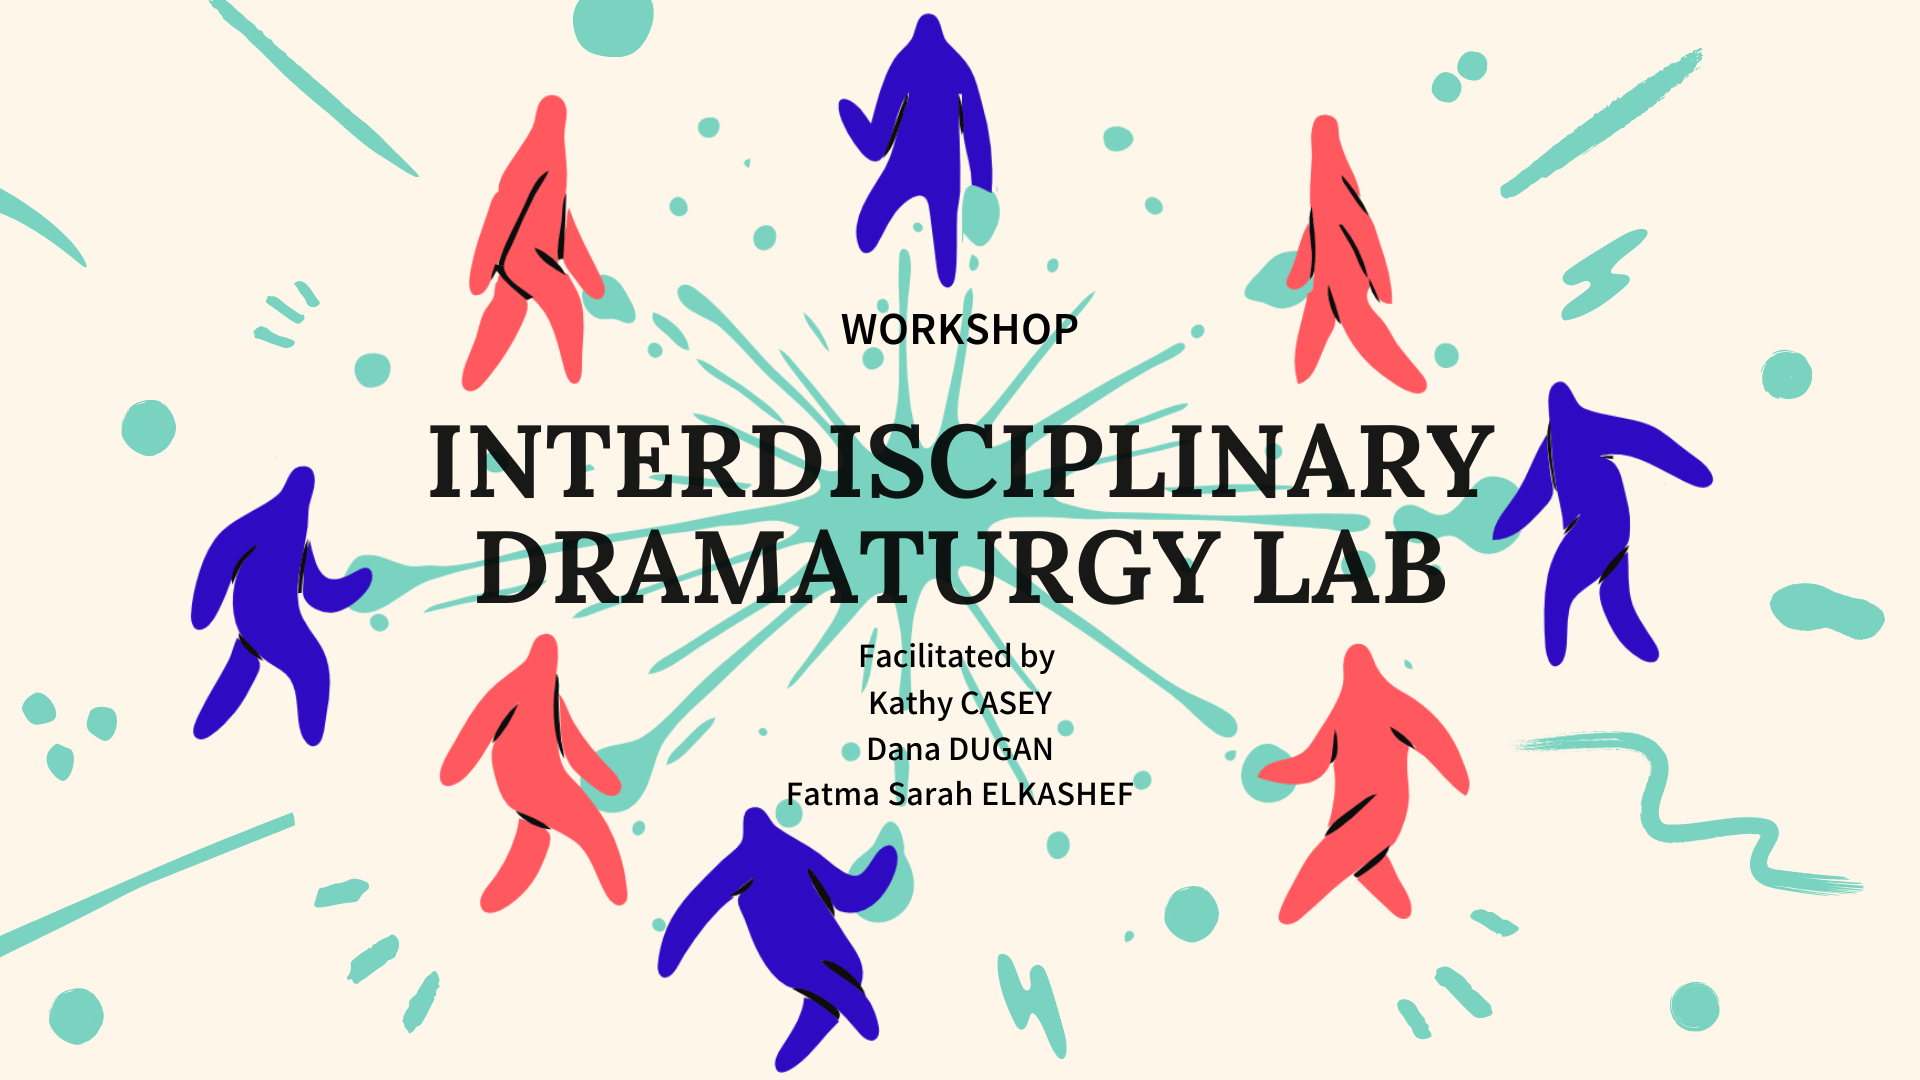 Illustration for the Interdisciplinary Dramaturgy Lab workshop 2021